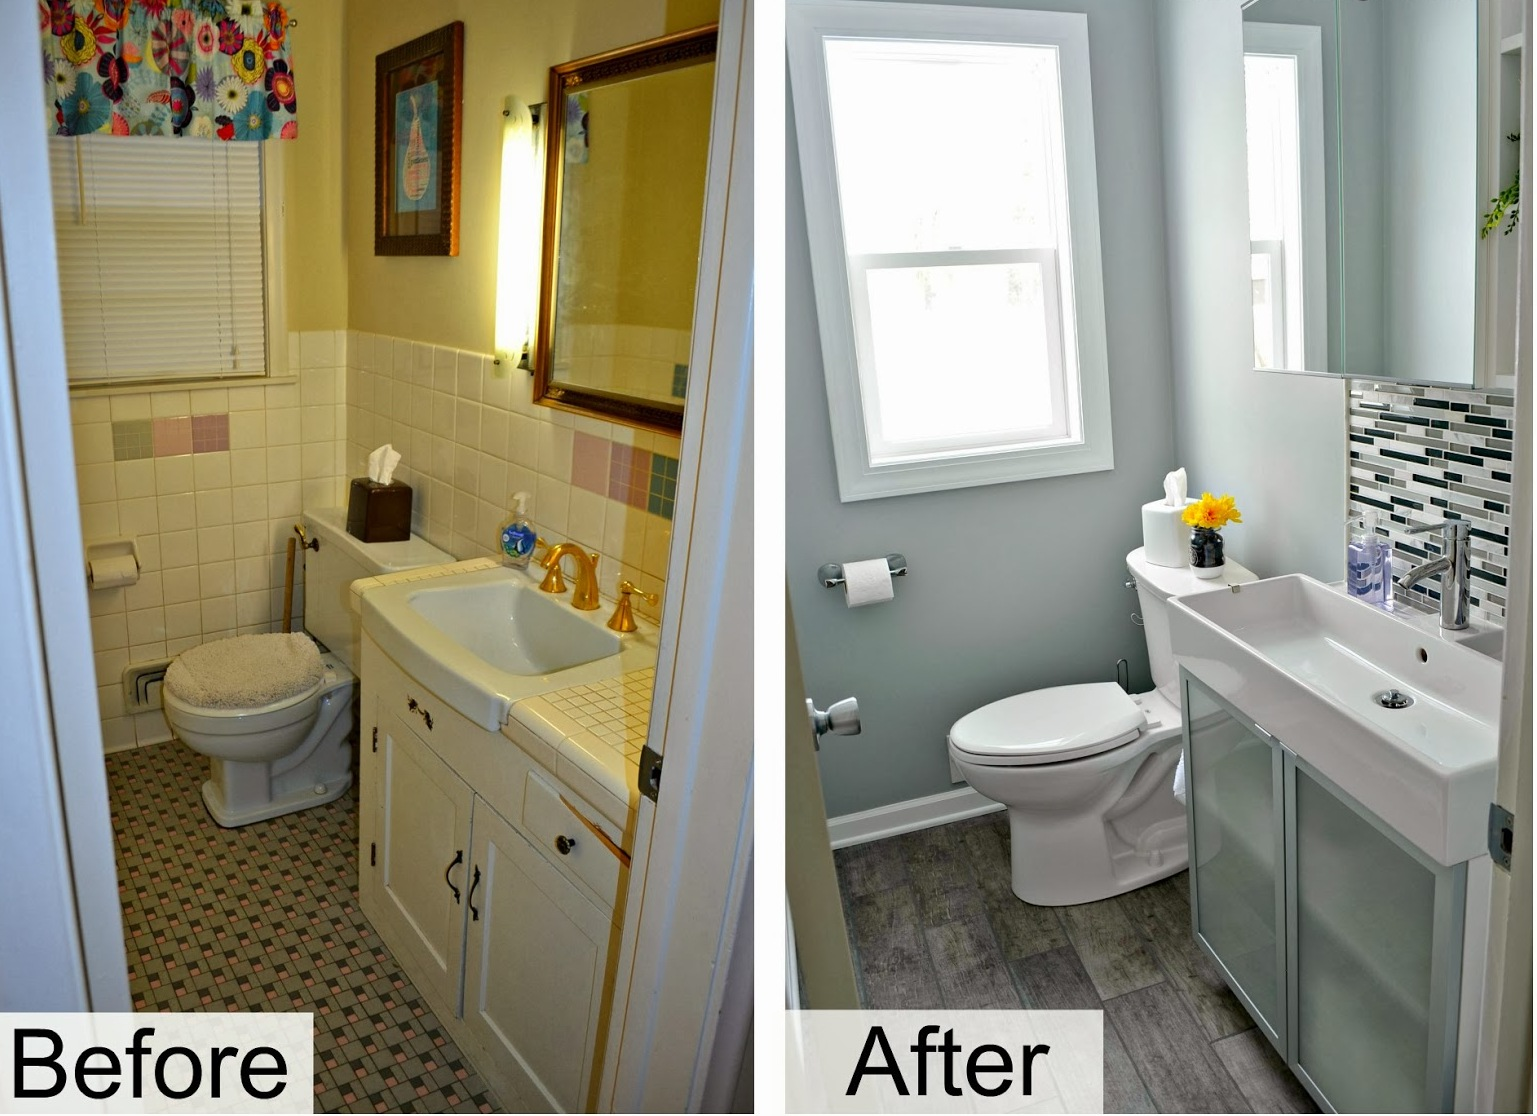 Pleasing 6 Stellar Bathroom Remodeling Tips Home Interior And Landscaping Pimpapssignezvosmurscom